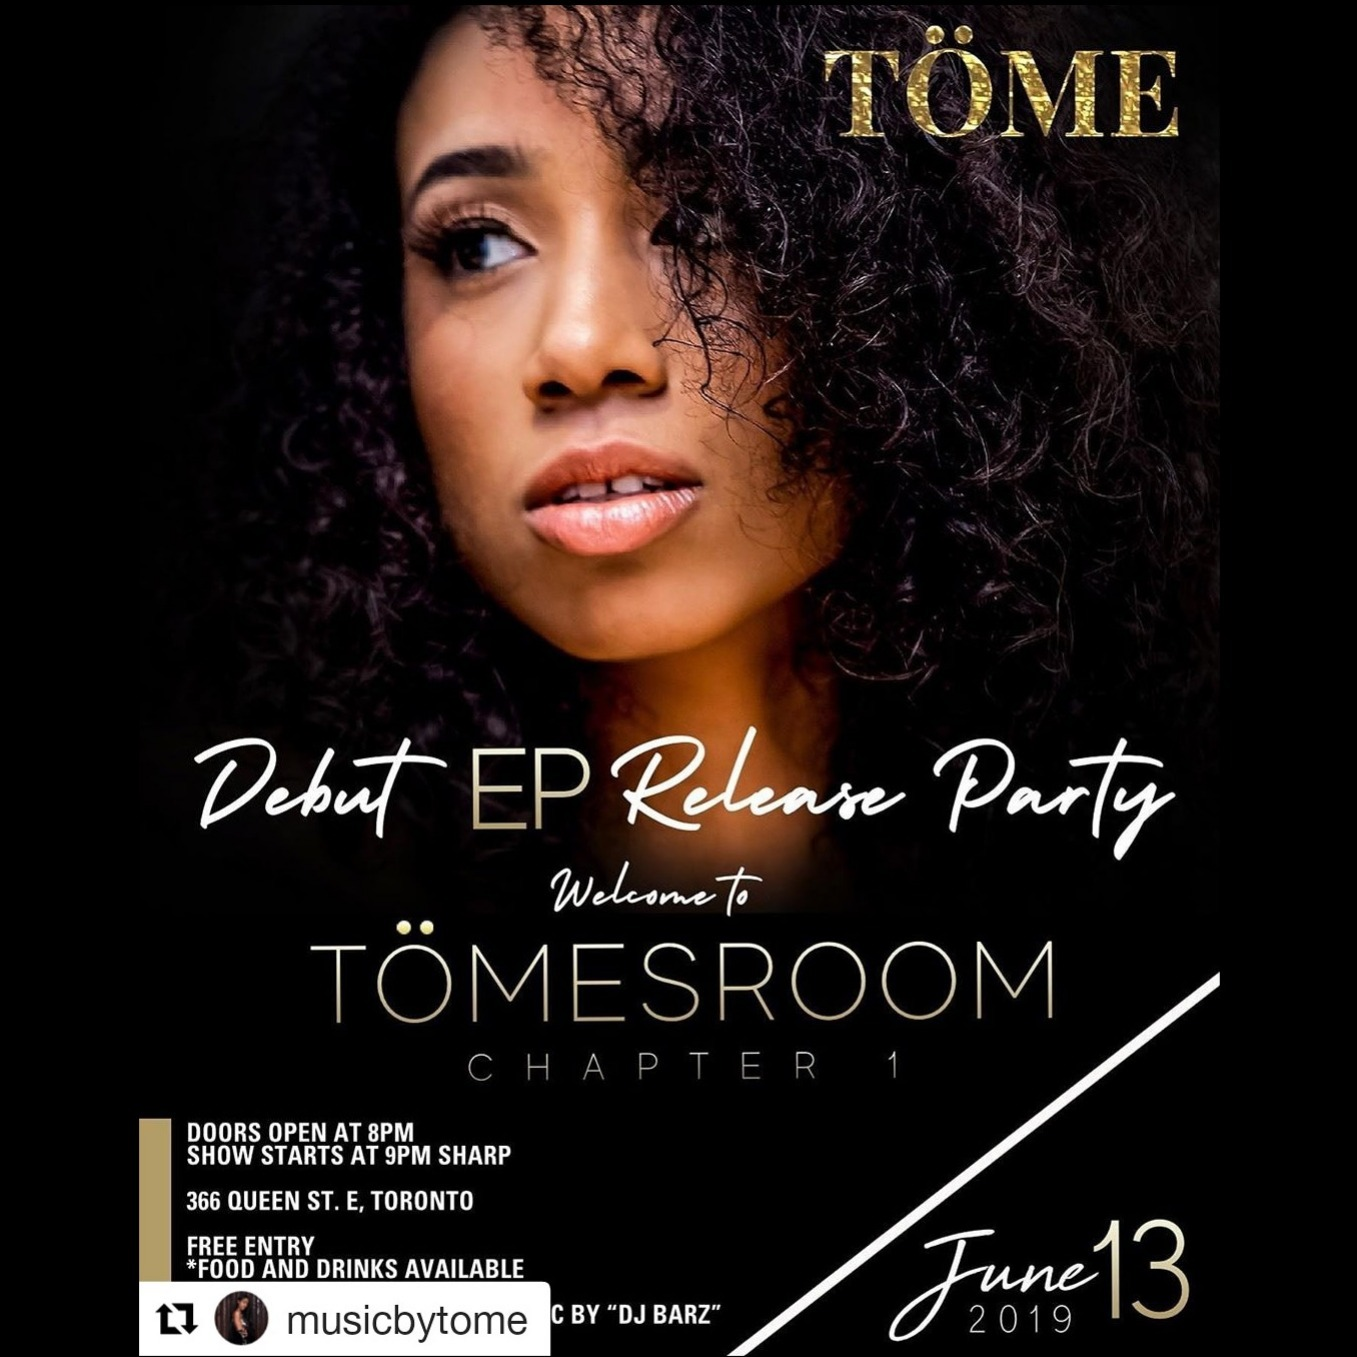 Tome EP Debut Release Party